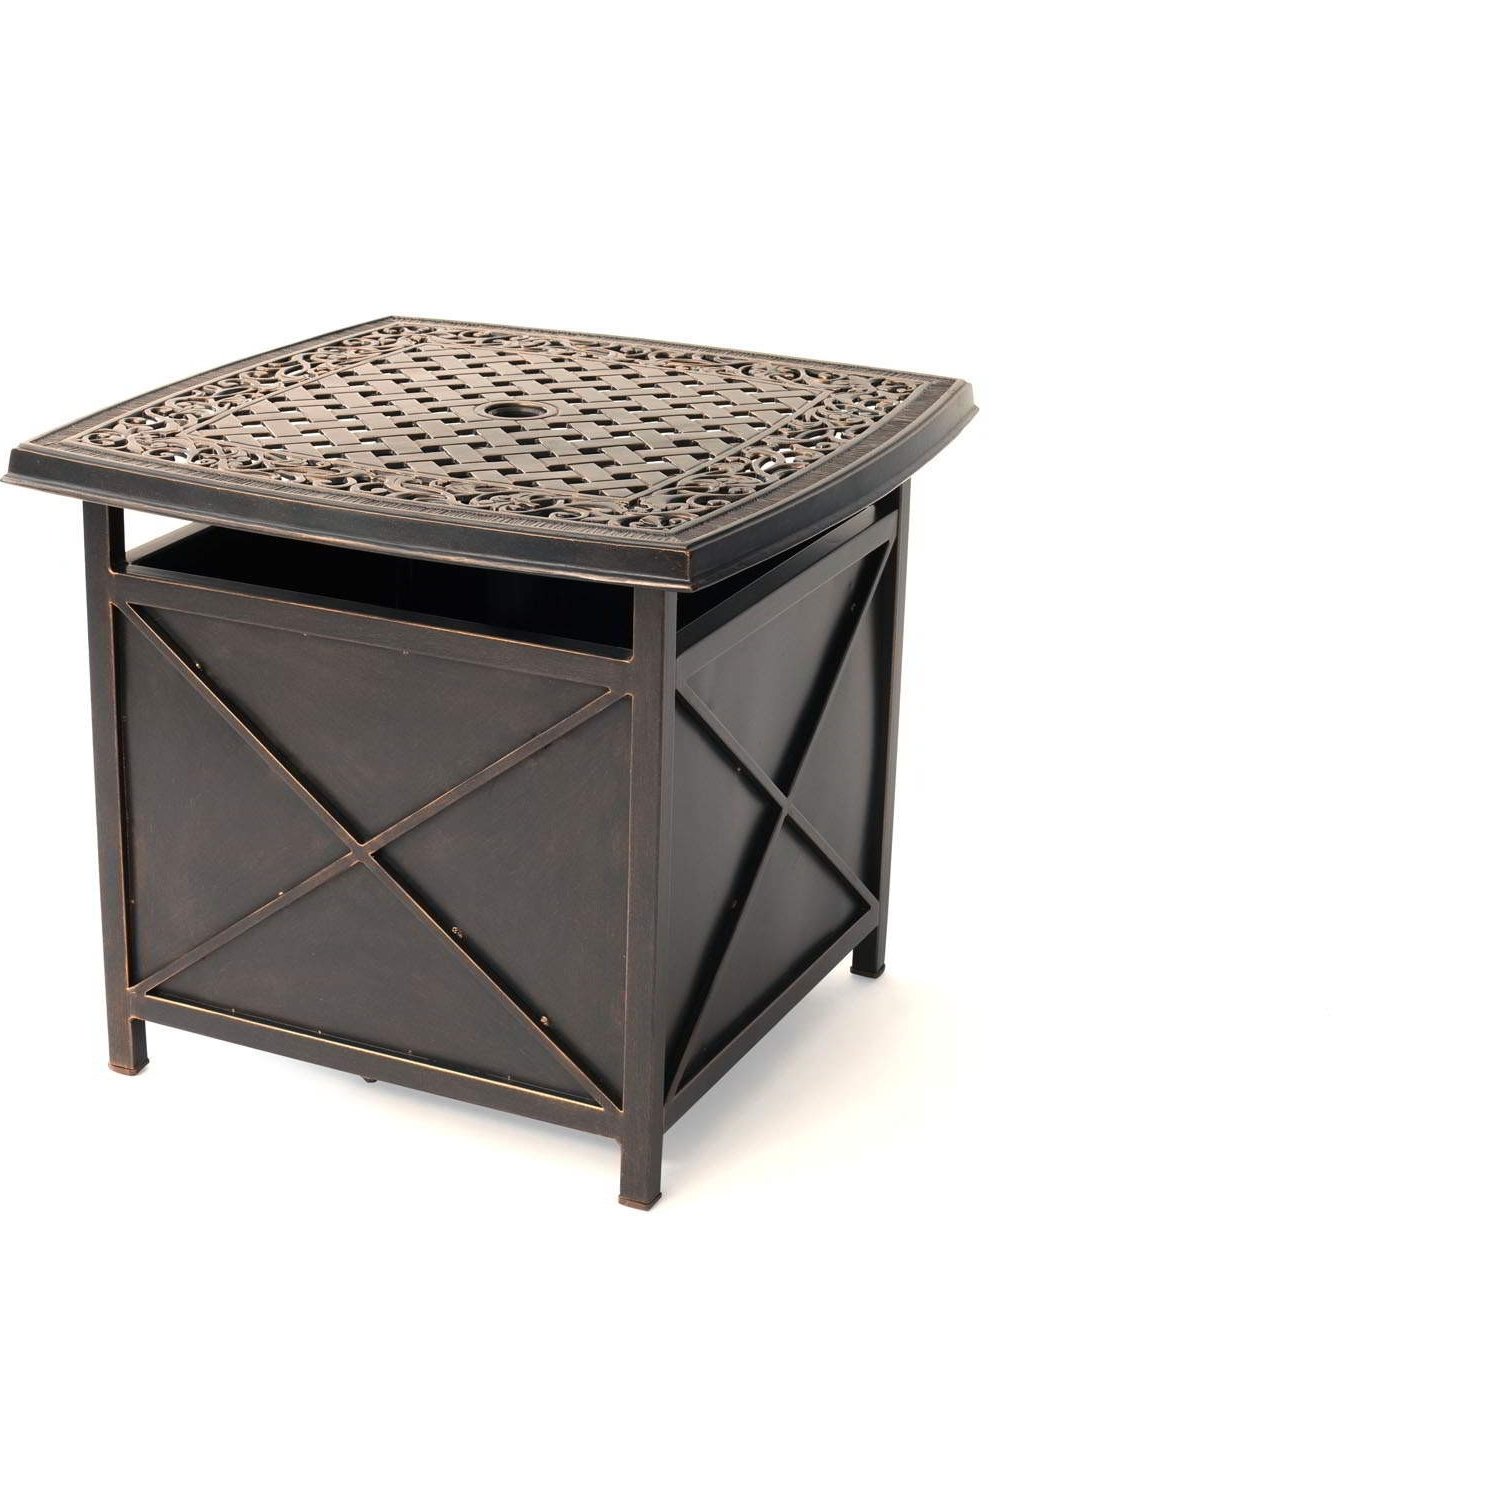 the best patio umbrella side tables preferred outdoor table mcnamaralaw within bombay outdoors pineapple accent view italian home decor drawer mirrored bedside mini decorative